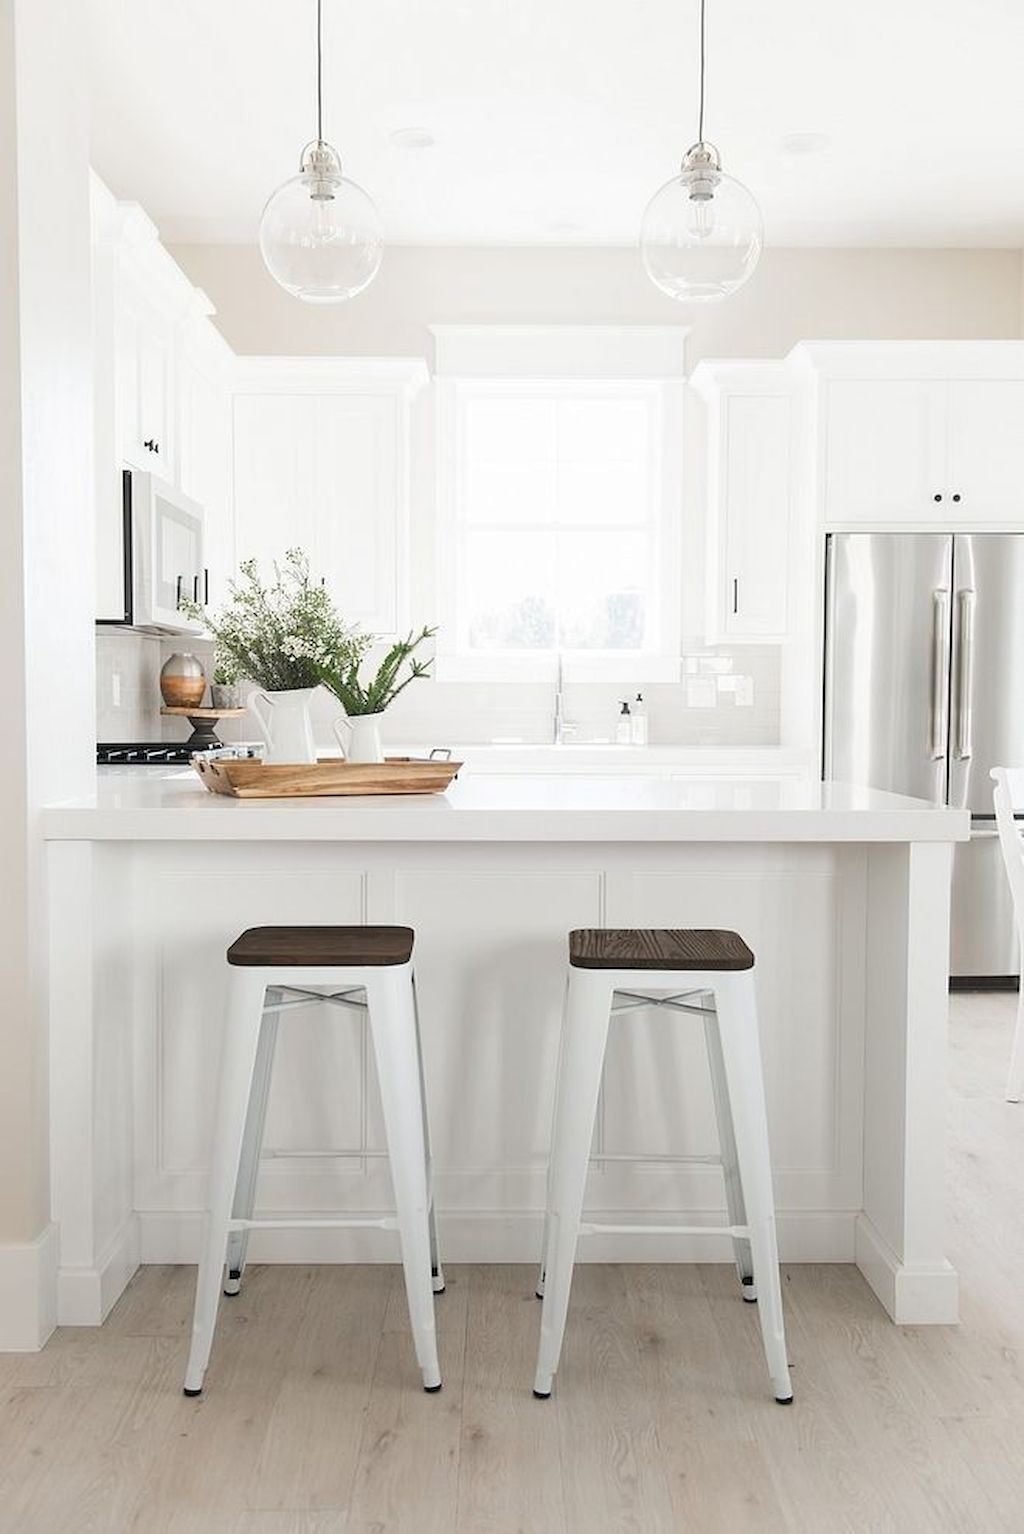 Amazing Small Kitchen Concepts For Your Snug Cooking Home To Z Peninsula Kitchen Design White Kitchen Design Kitchen Design Small White kitchen with peninsula